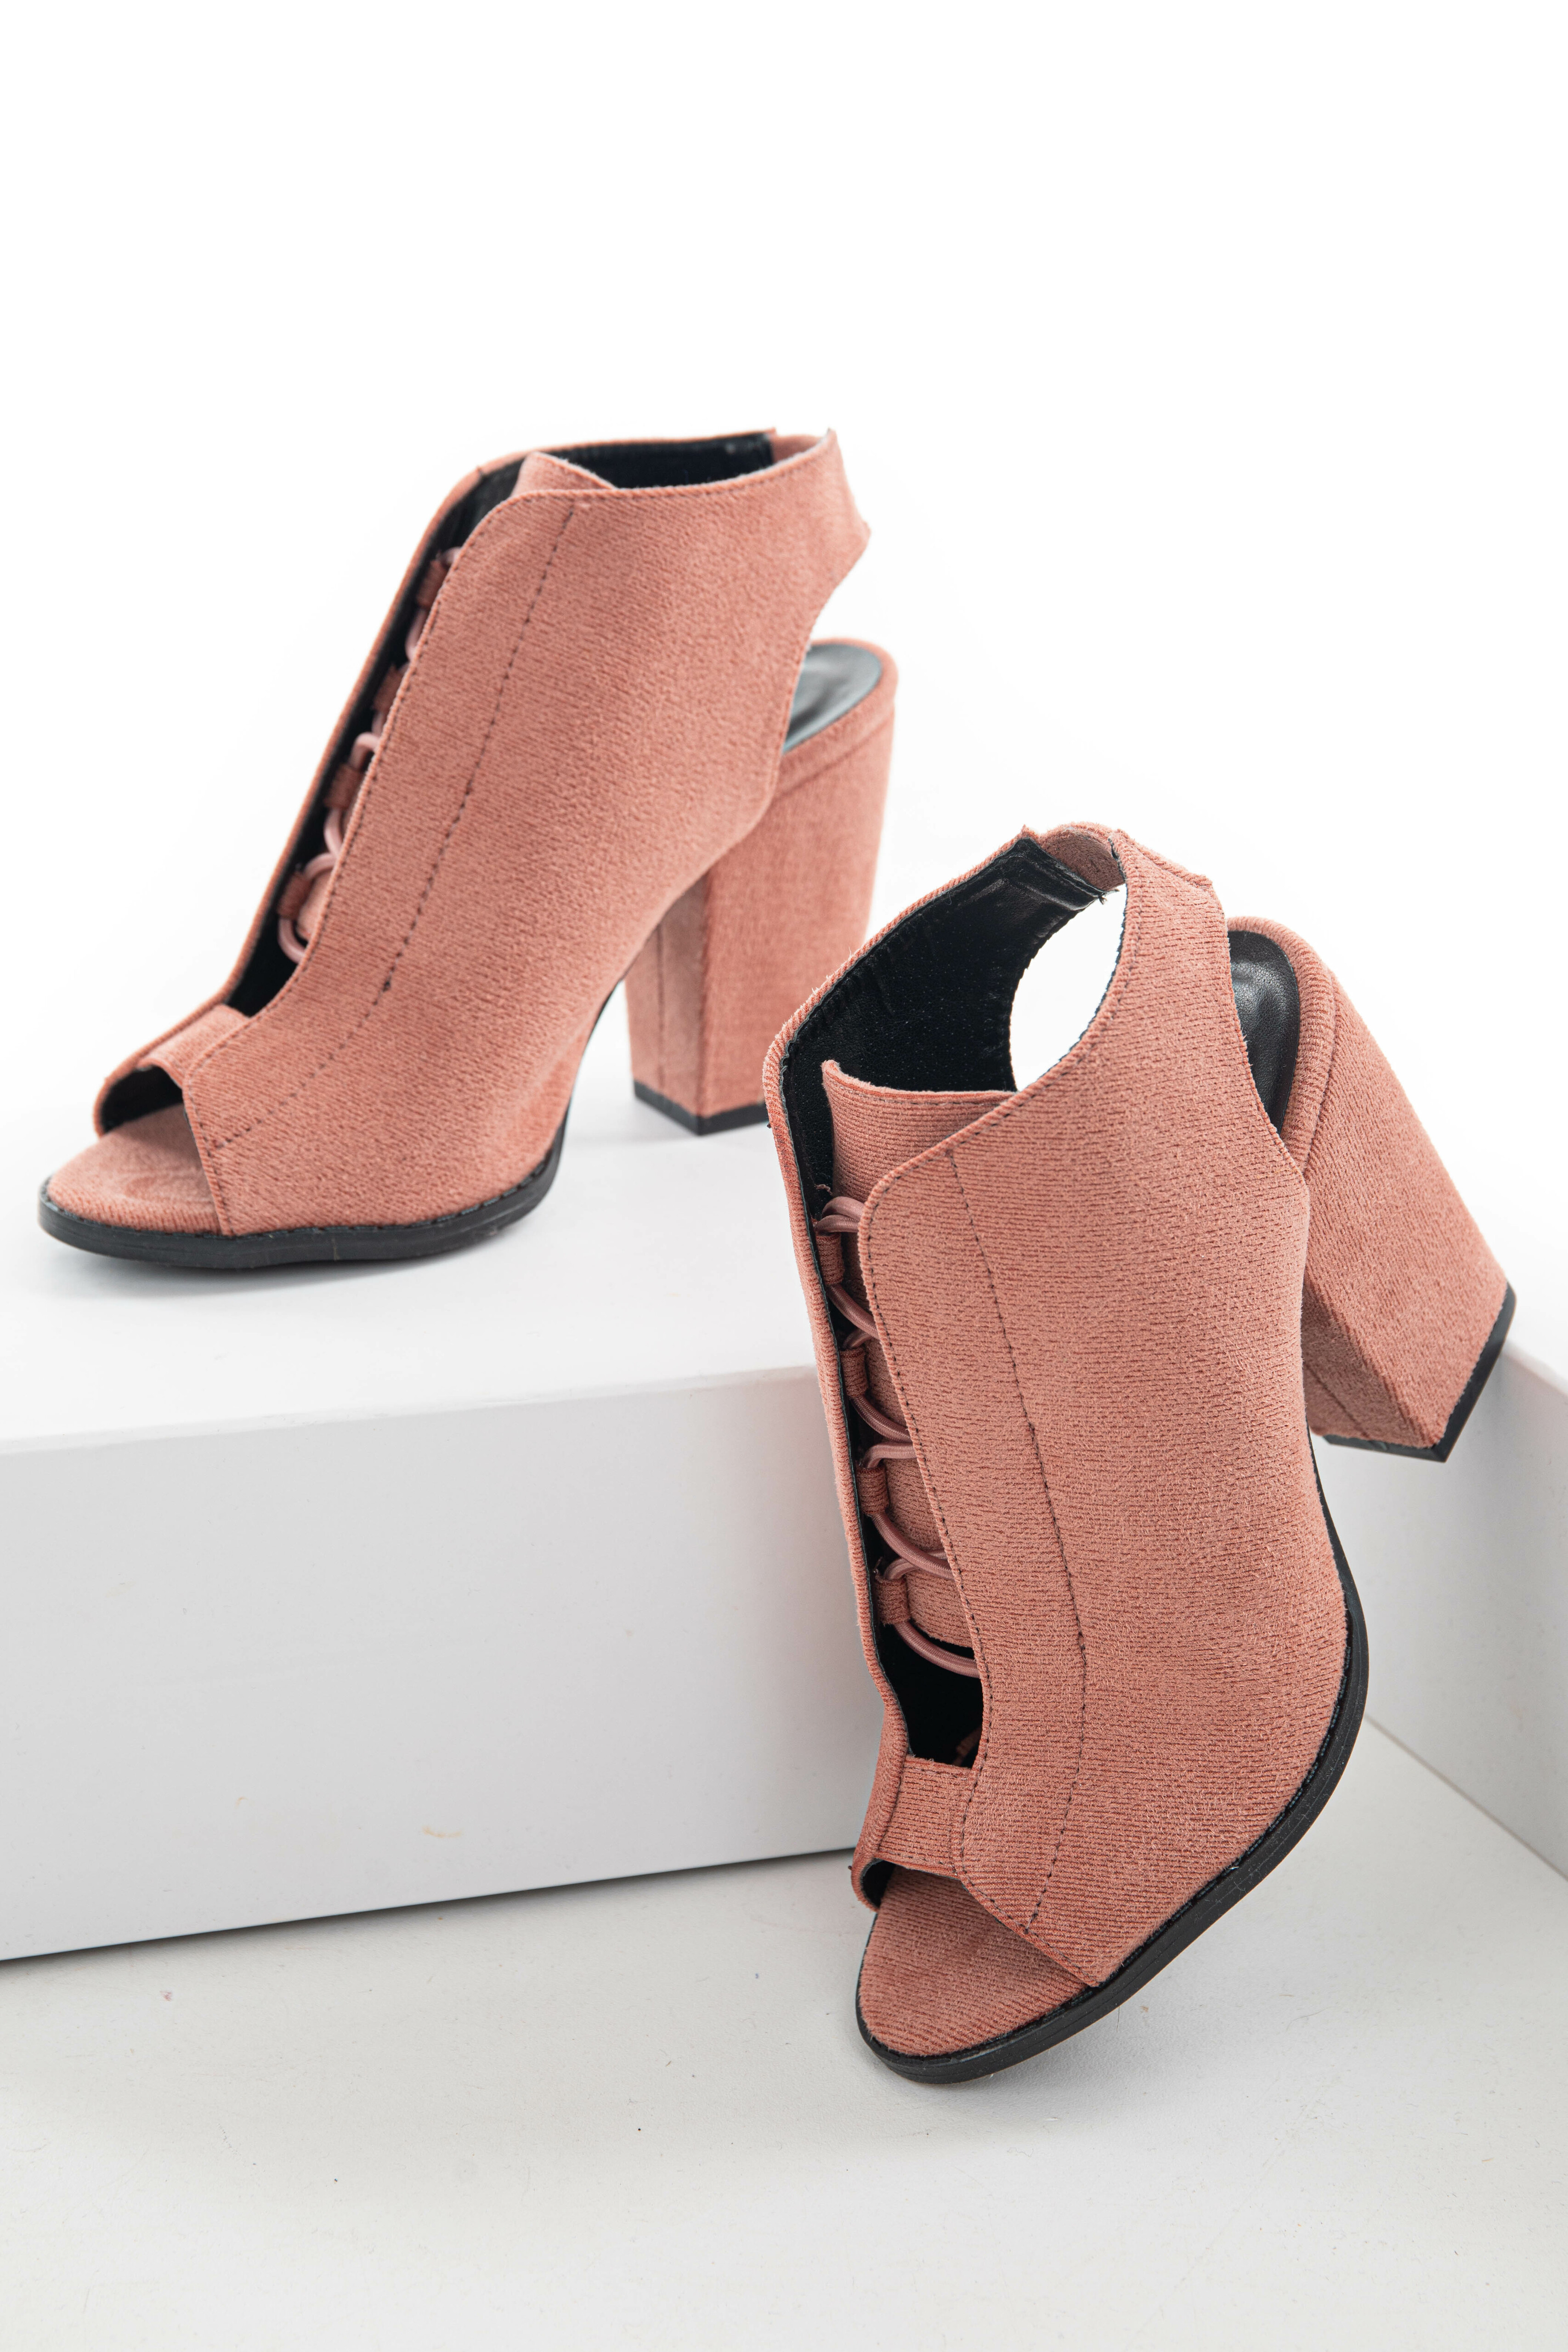 Punch Bungee Laced Peep Toe Sling Back Booties